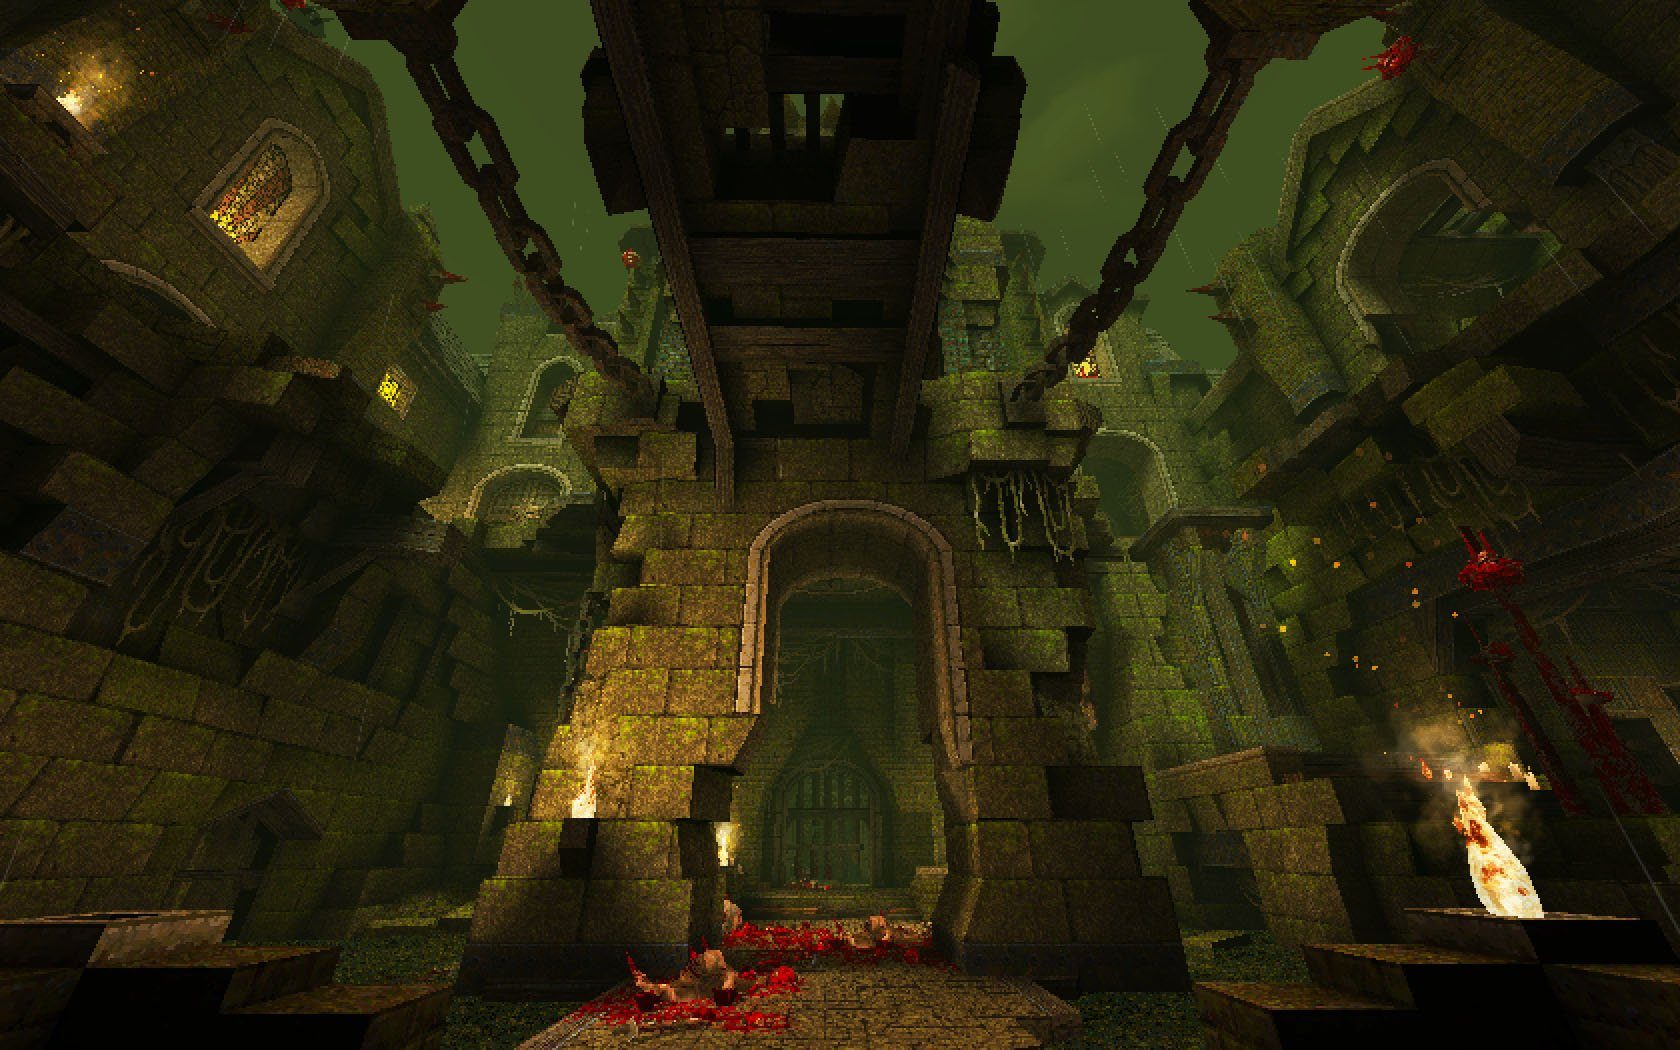 The most ambitious Quake map ever built has just been released in